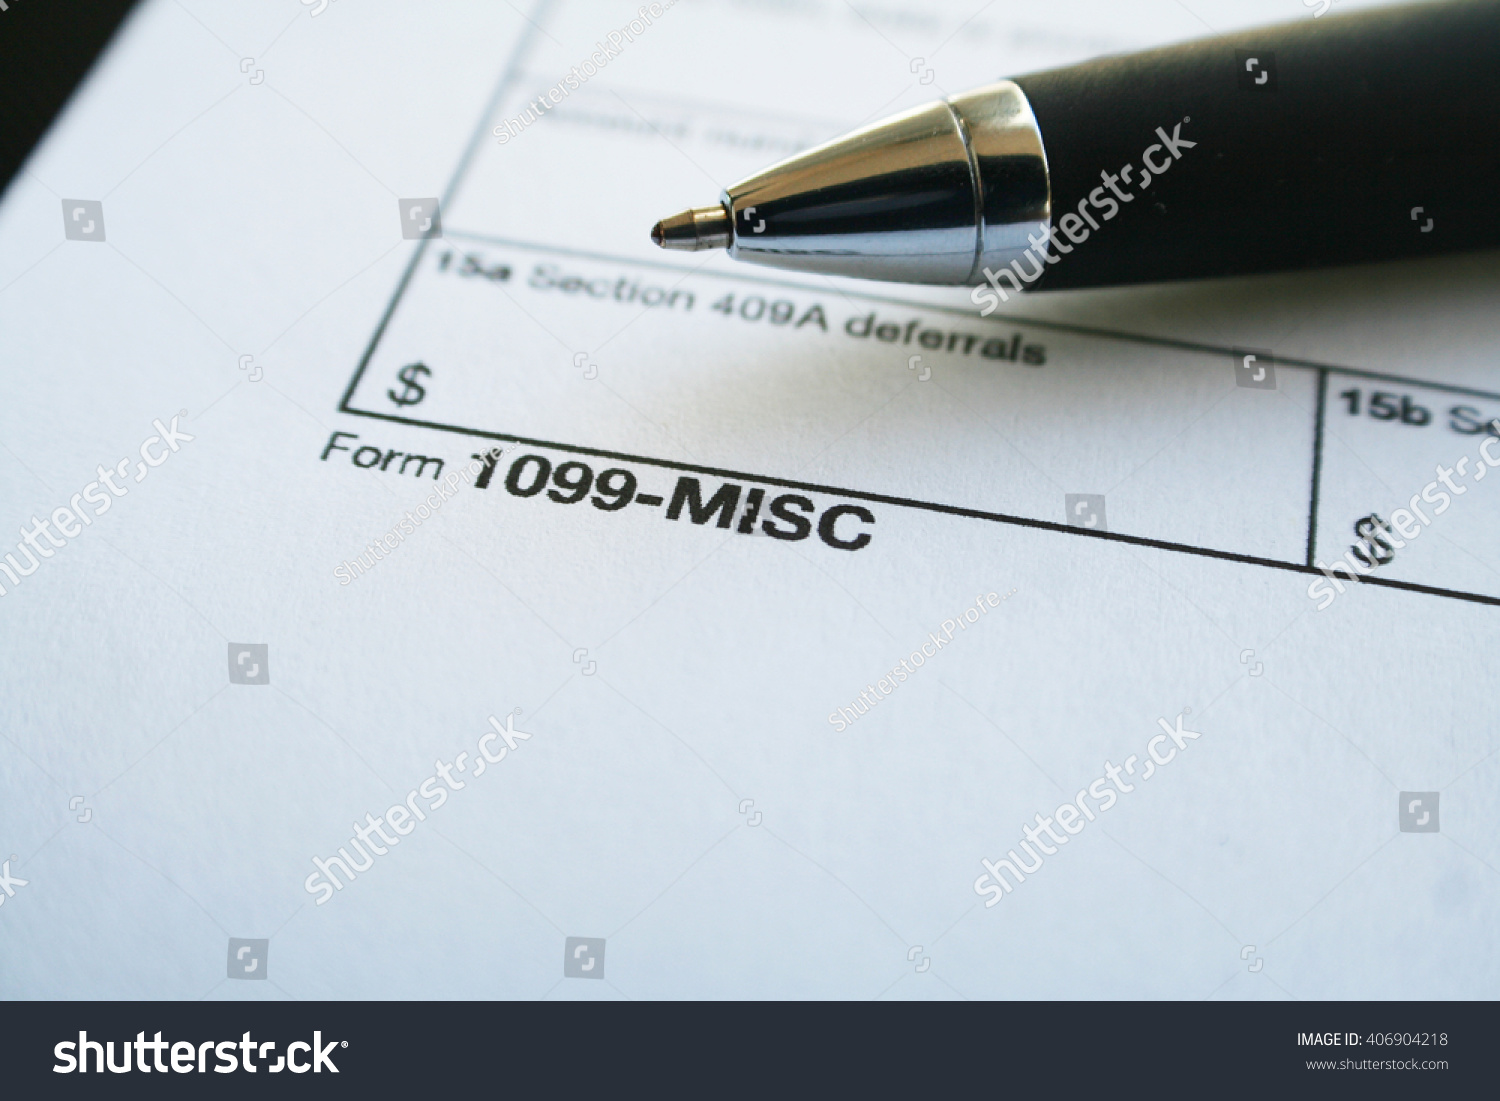 Related Form 1099 Tax Topics: